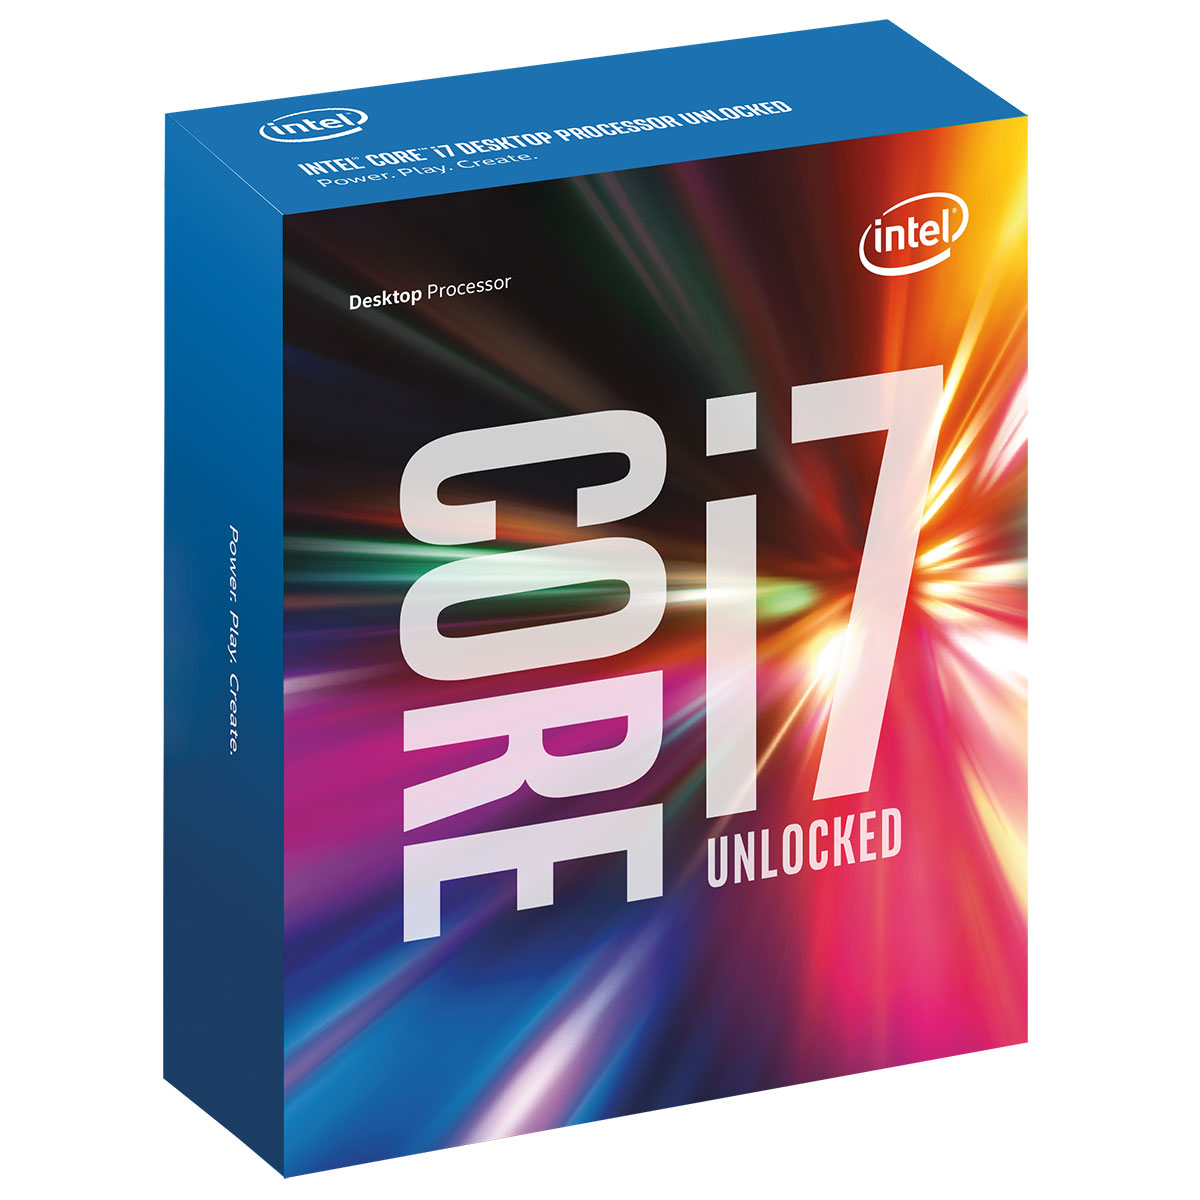 Processeur Intel Core i7-6700K (4.0 GHz) Processeur Quad Core Socket 1151 Cache L3 8 Mo Intel HD Graphics 530 0.014 micron (version boîte sans ventilateur - garantie Intel 3 ans)